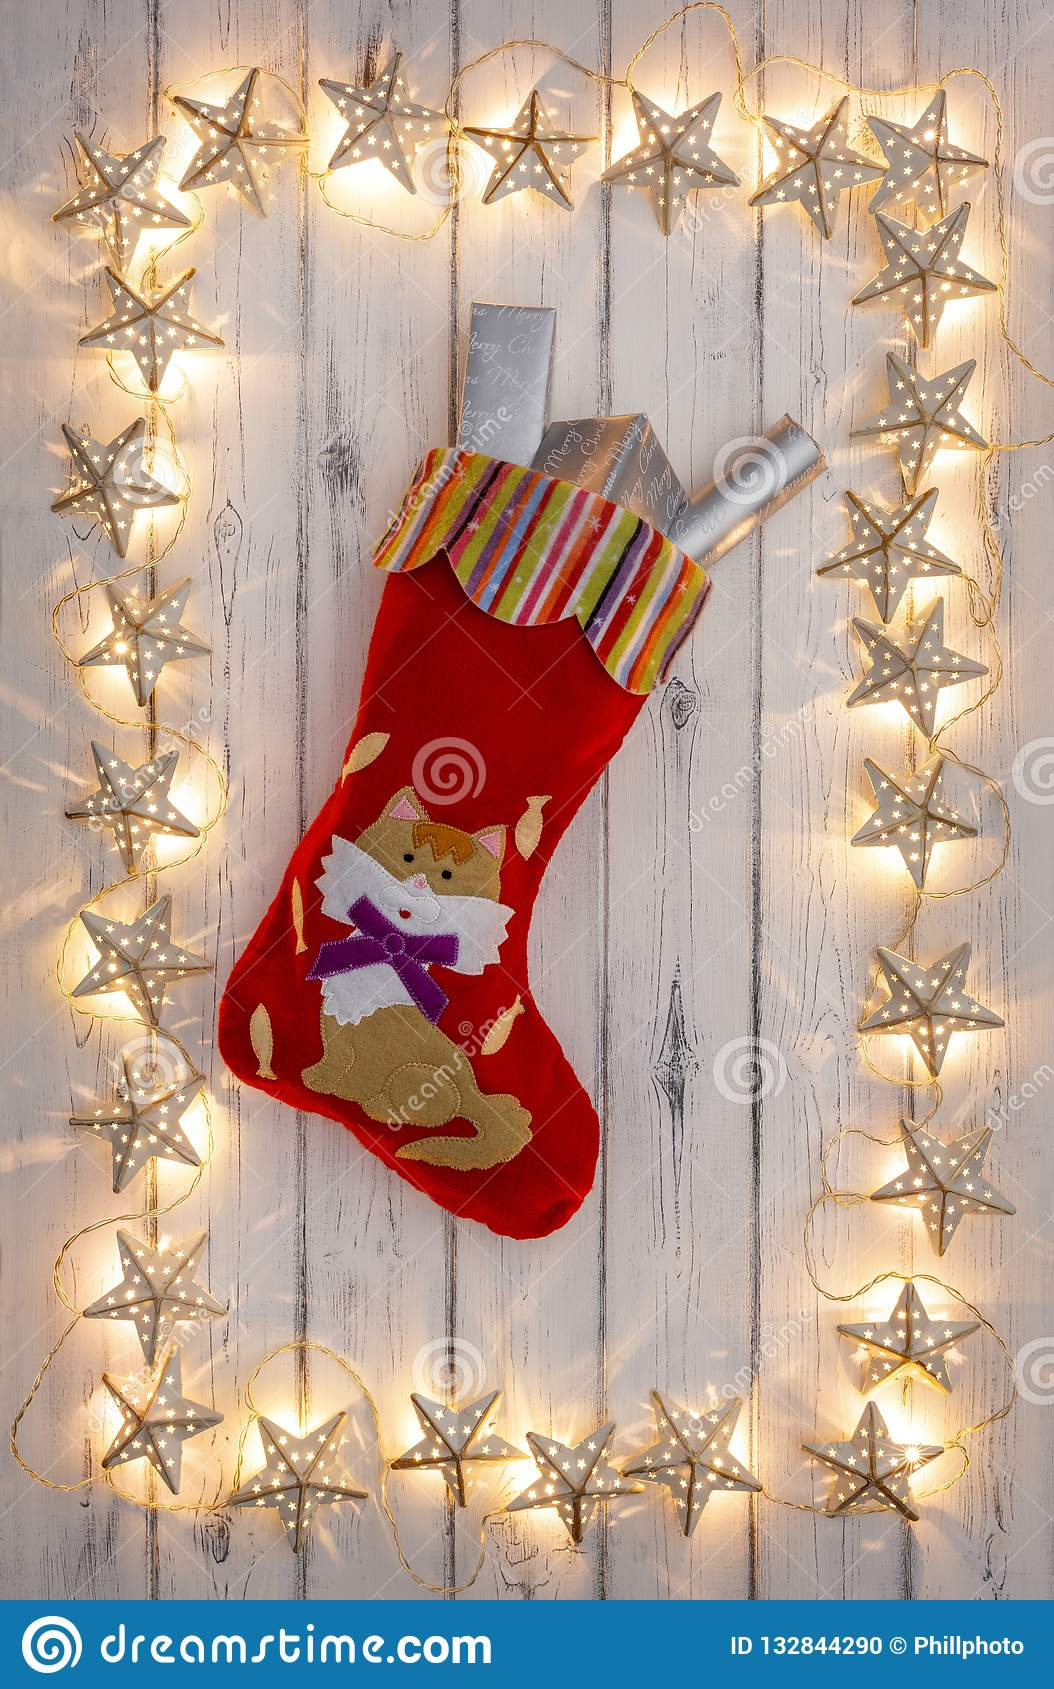 A border of golden star christmas lights, with a kittens christmas stocking and presents, on a destressed woodern background